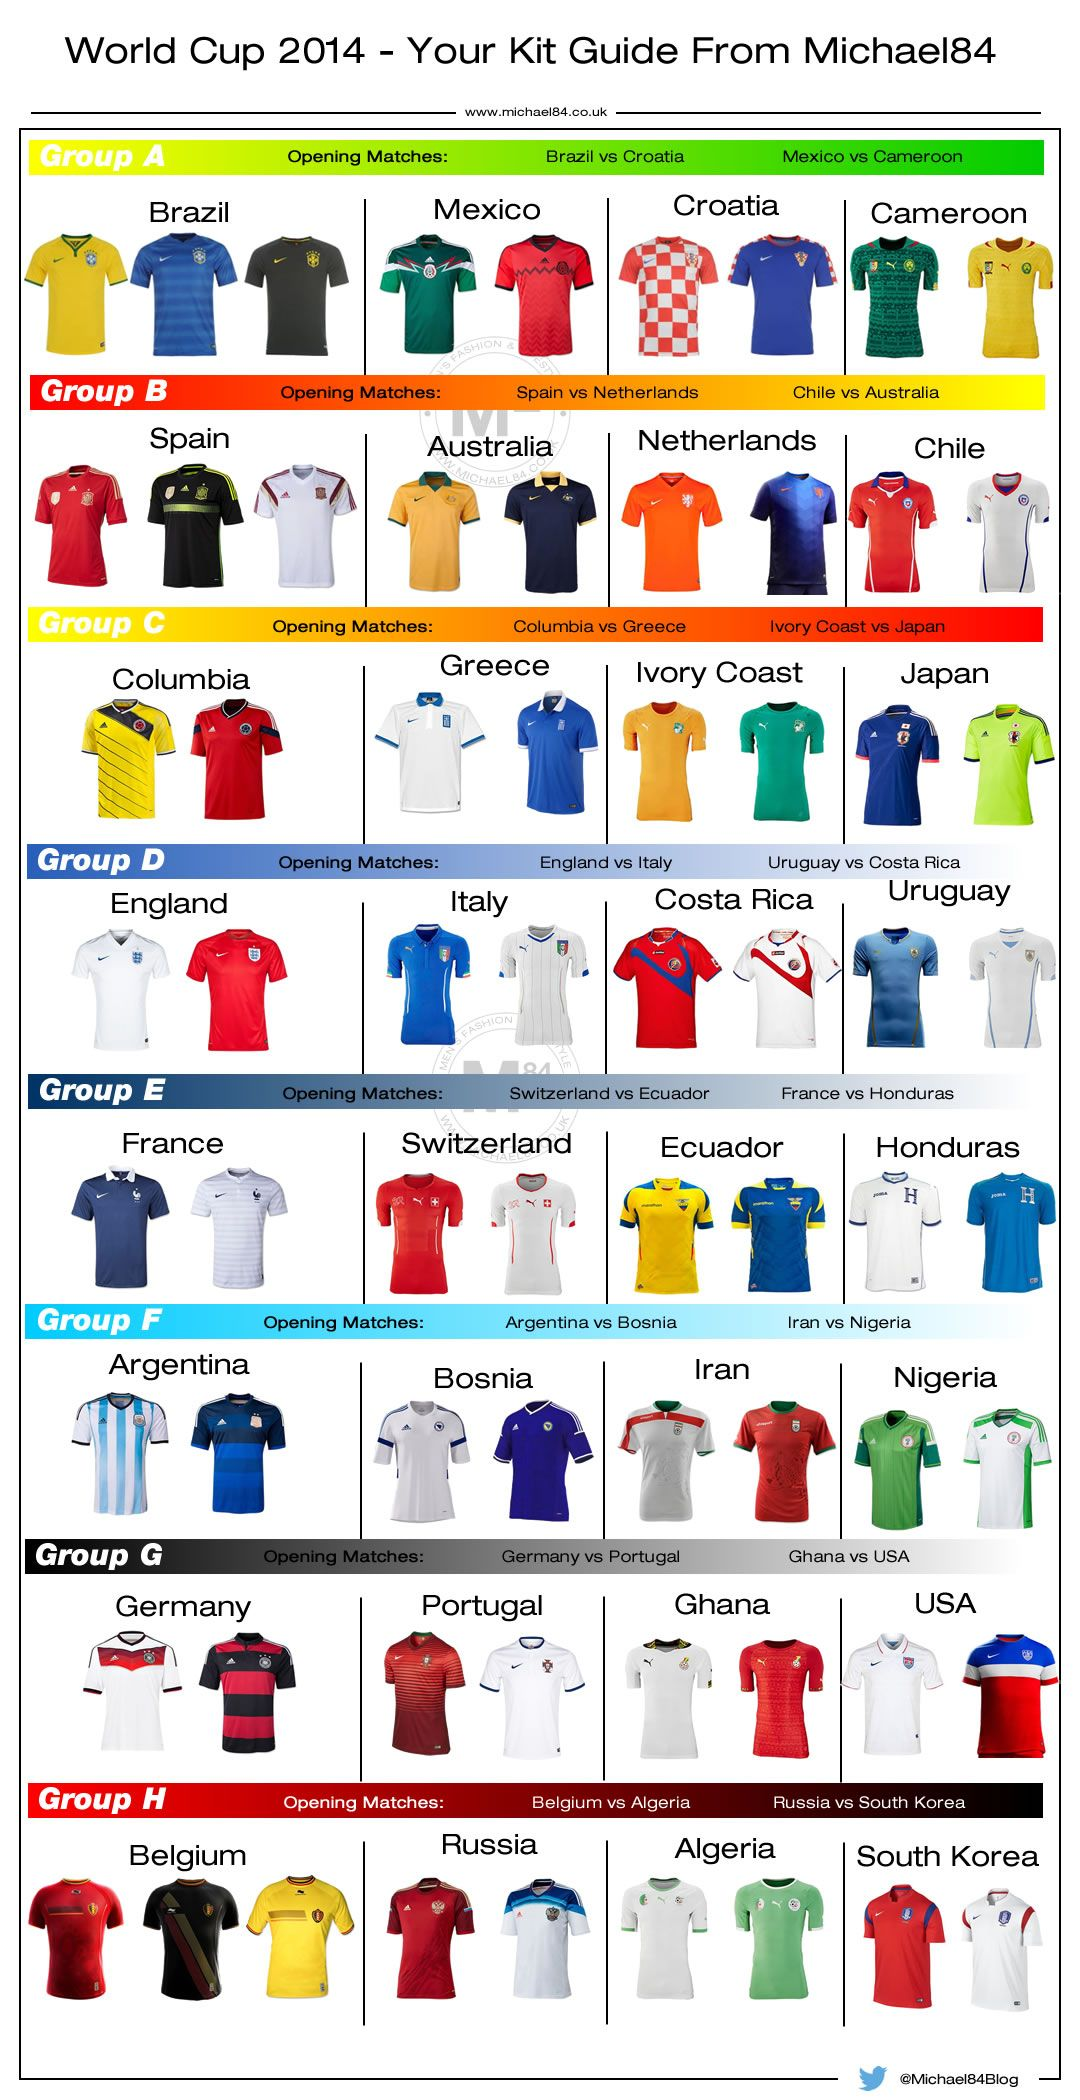 Ausmalbilder Fussball Wappen Bundesliga : All The Home And Away Kits From The 2014 World Cup Teams